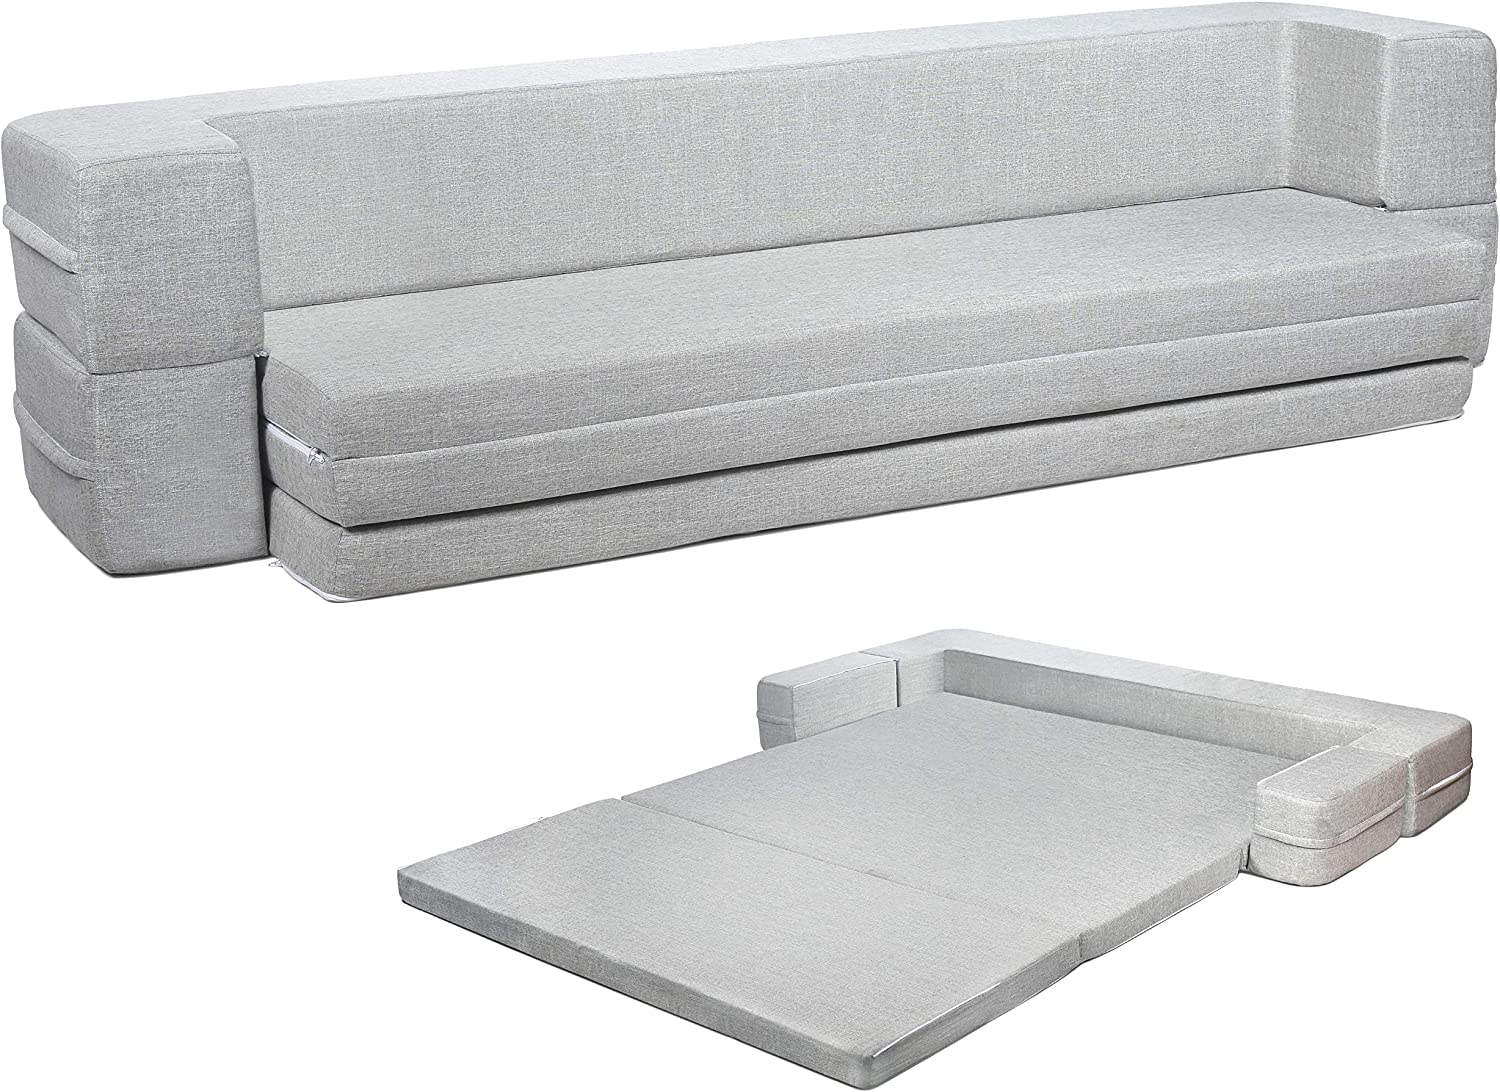 - Amazon.com: Milliard Daybed Sofa Couch Bed Queen To Twin Folding